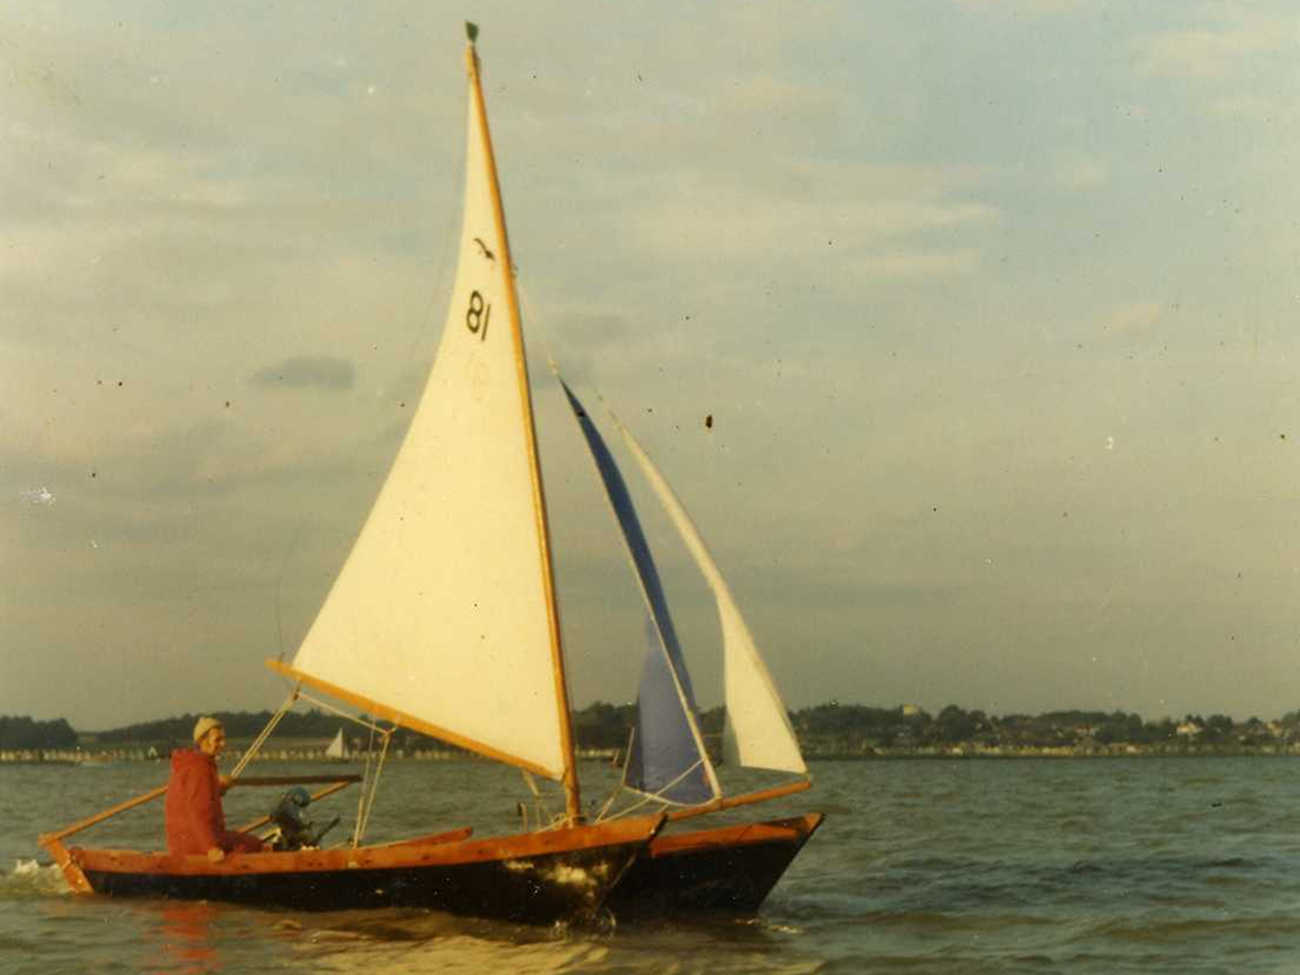 Maui with black hulls and white and blue sails, one man at the helm